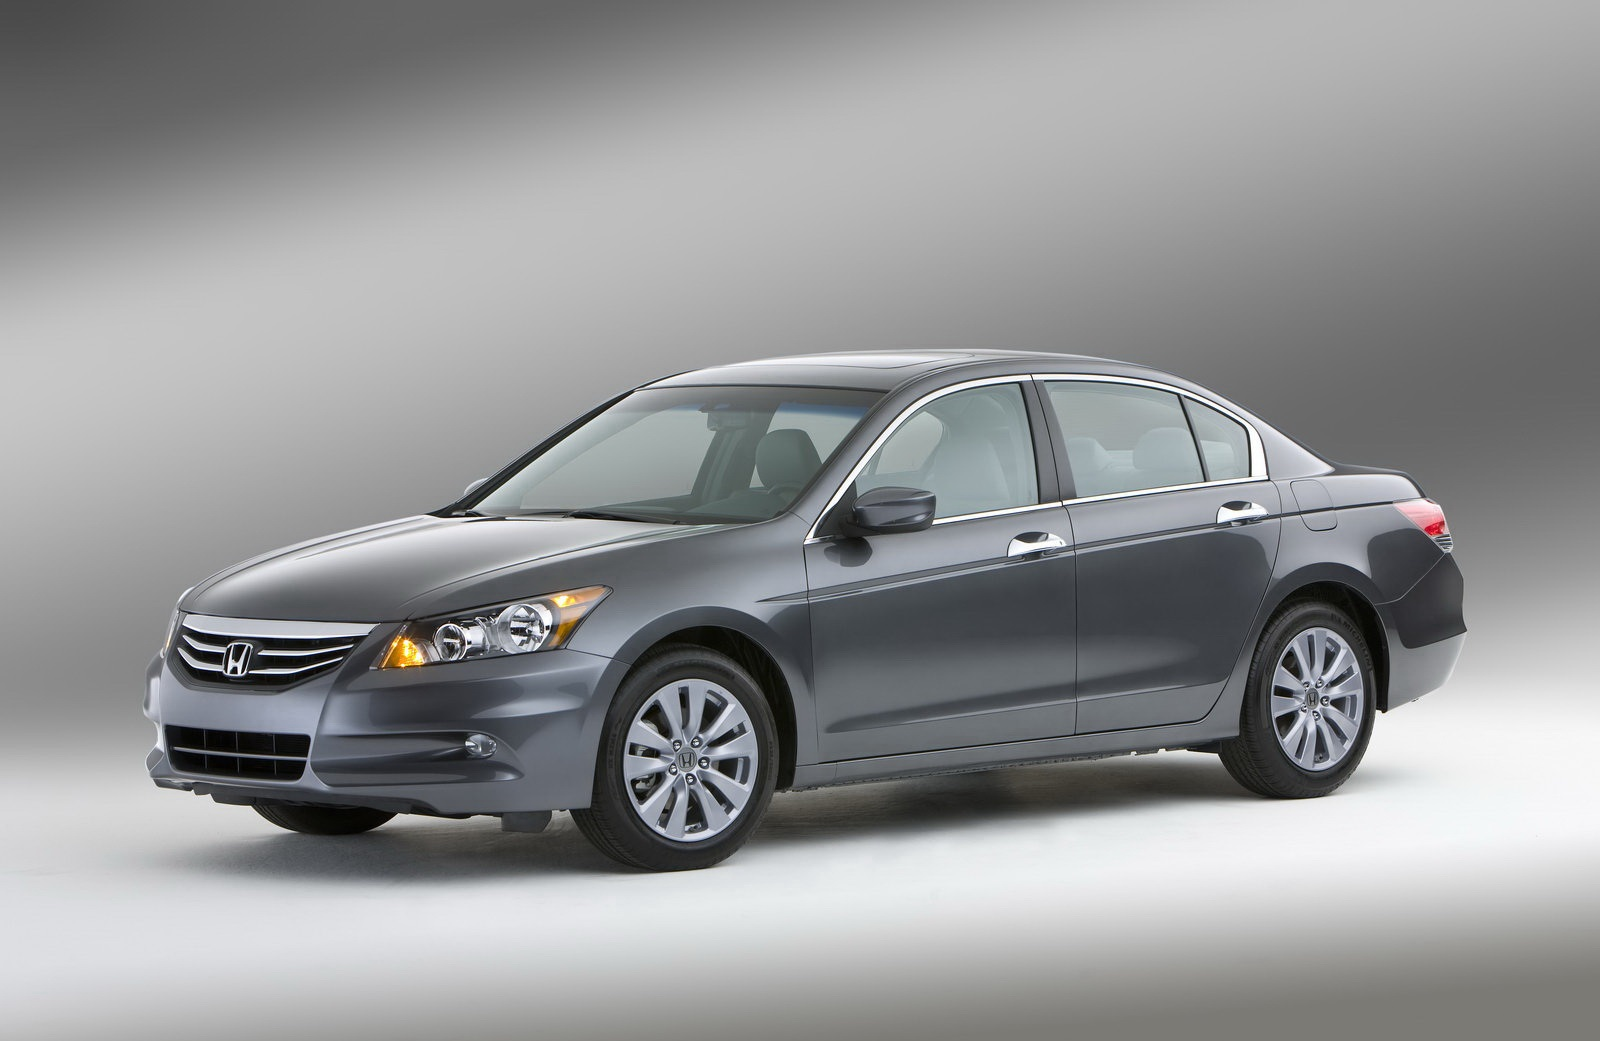 2011-honda-accord-sedan-8